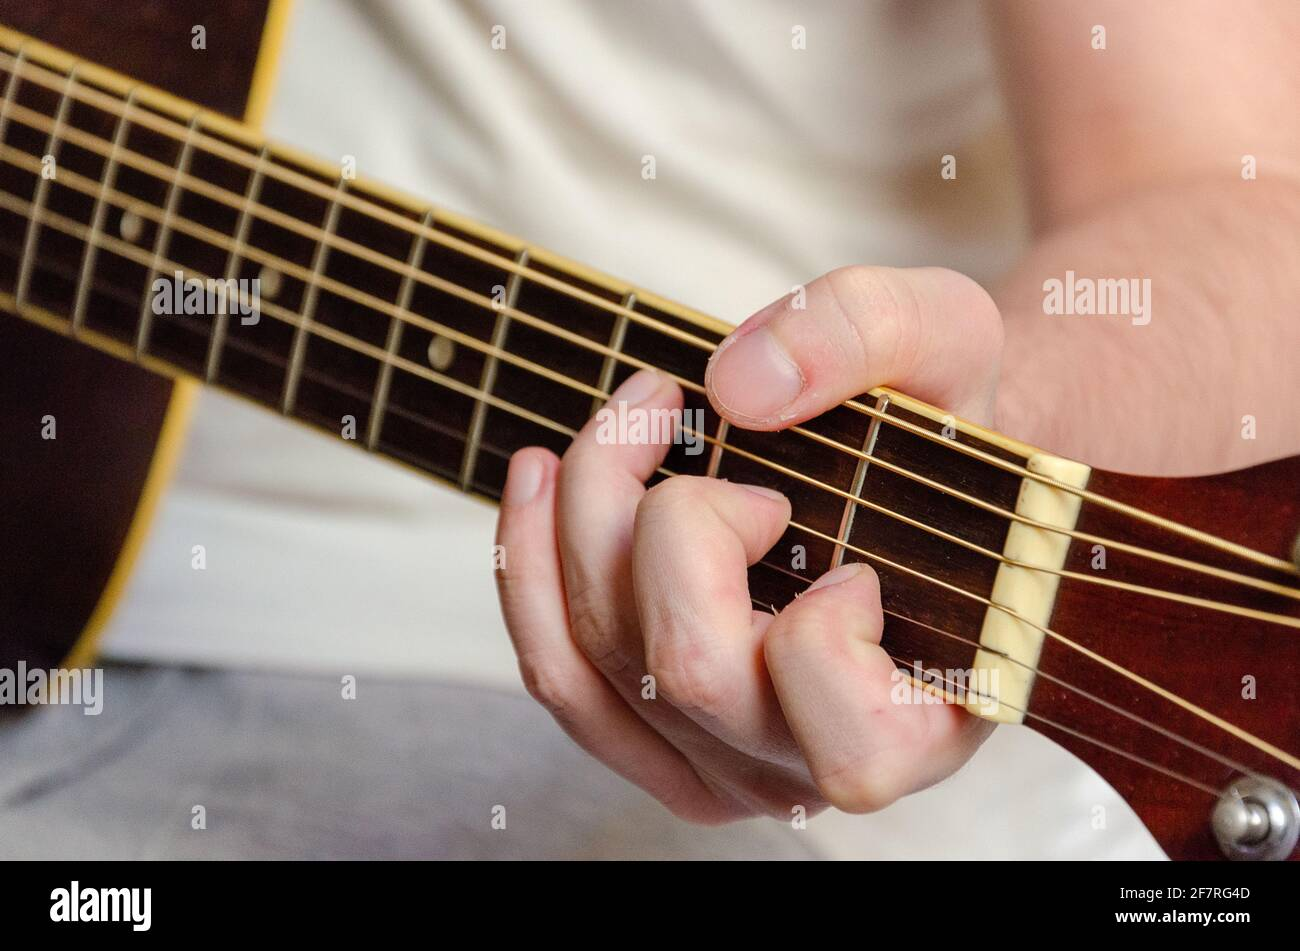 male fingers playing acoustics guitar strings Stock Photo